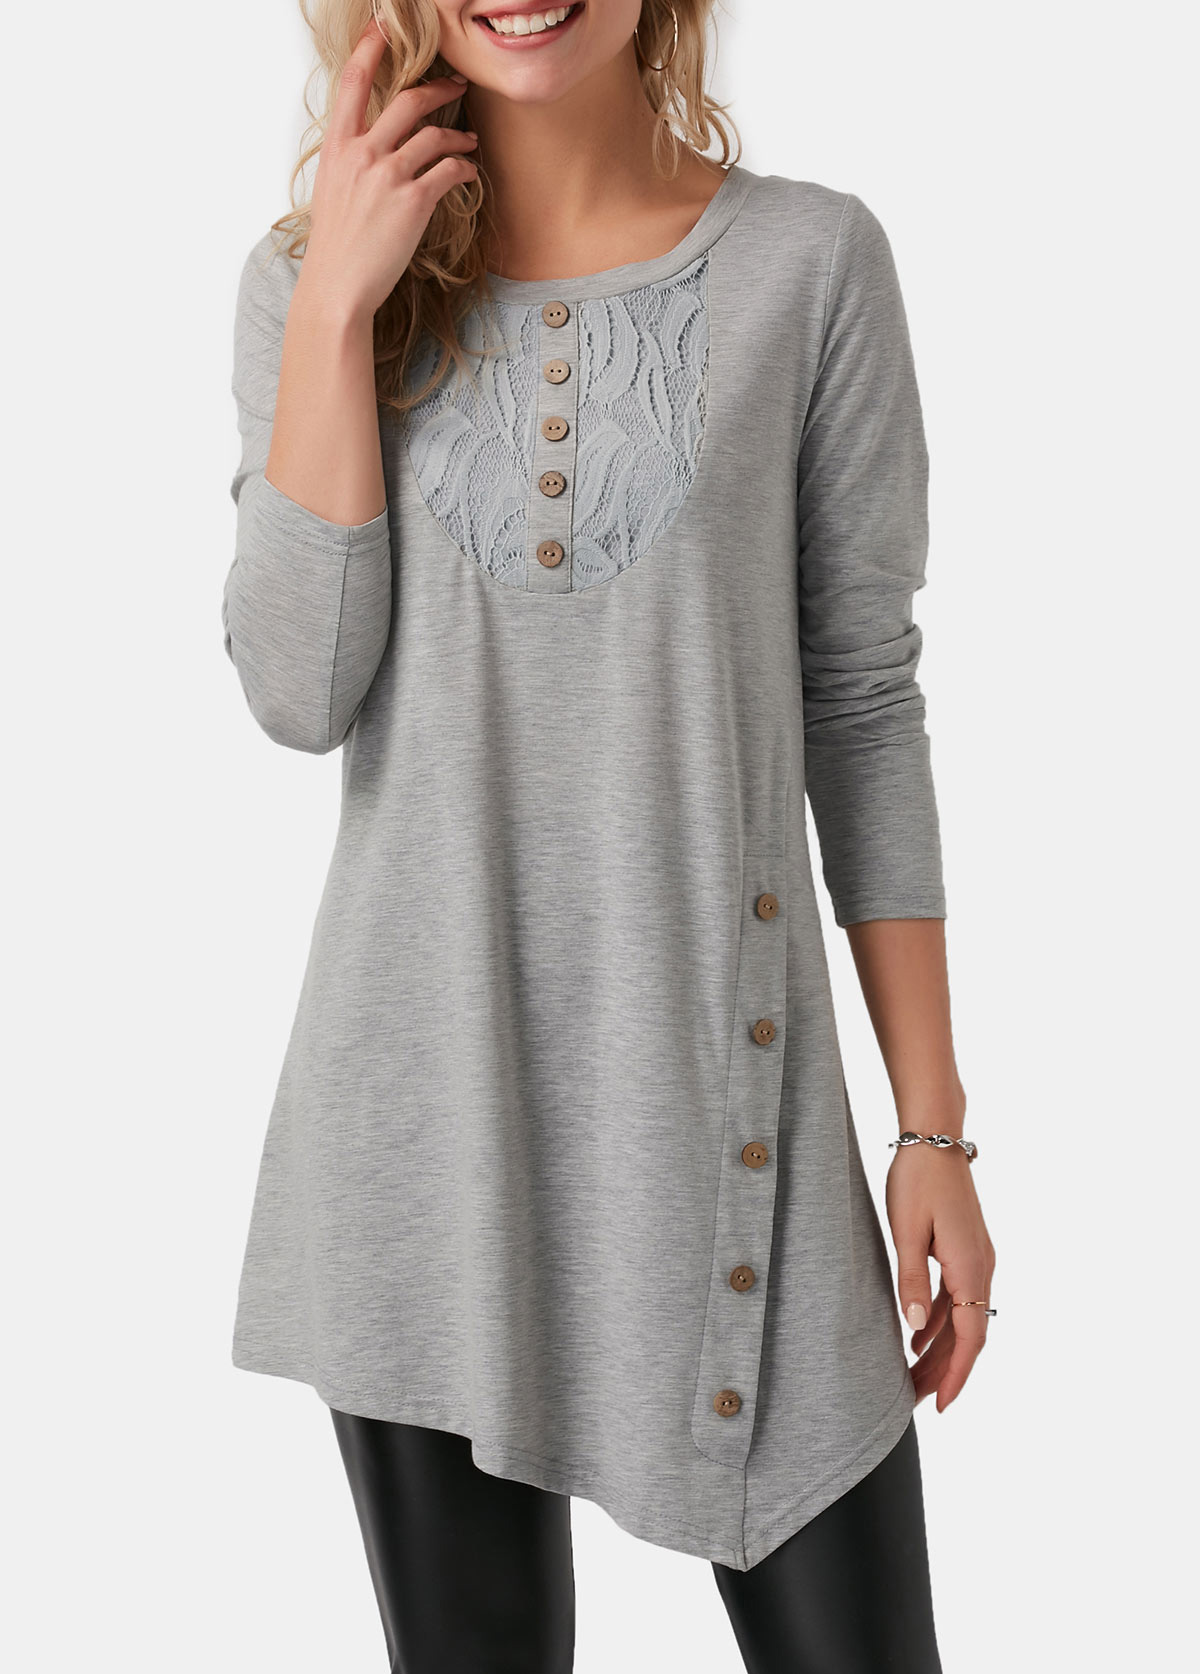 Asymmetric Hem Light Grey Button Detail T Shirt